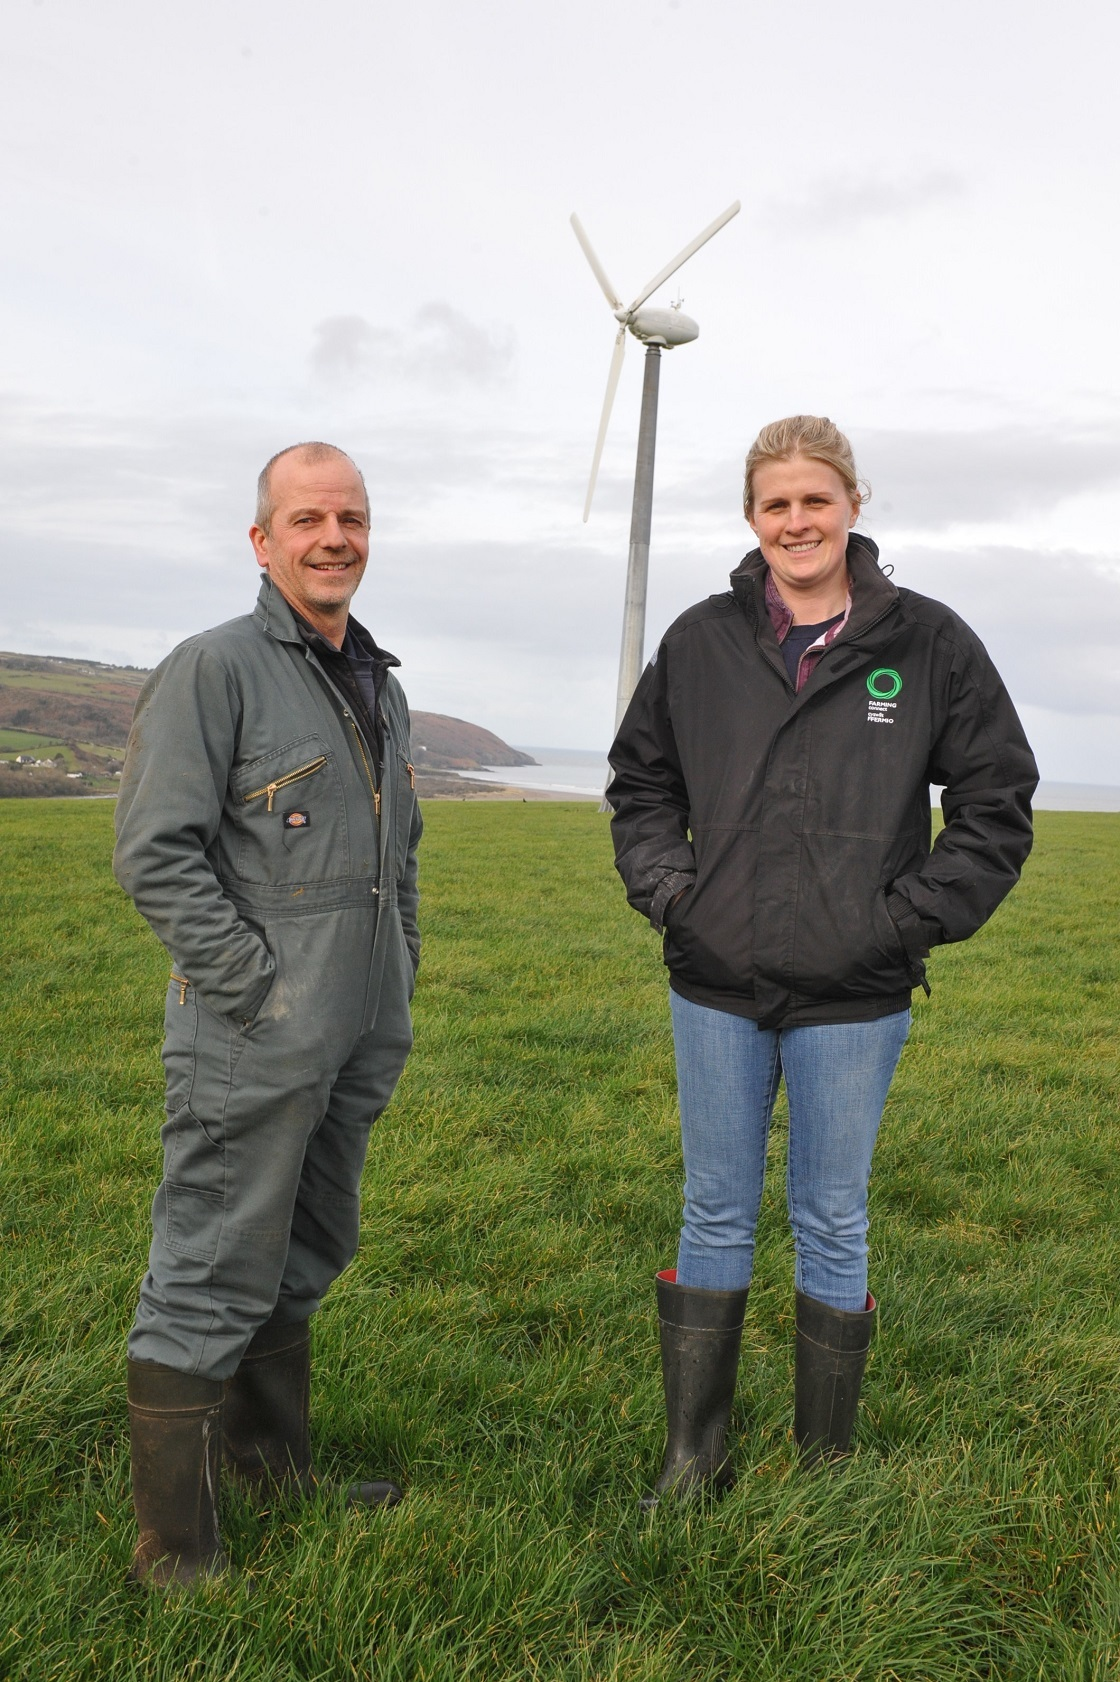 David Phillips, pictured with Abigail James of Farming Connect, has more than halved his energy costs with renewables PICTURE: Debbie James